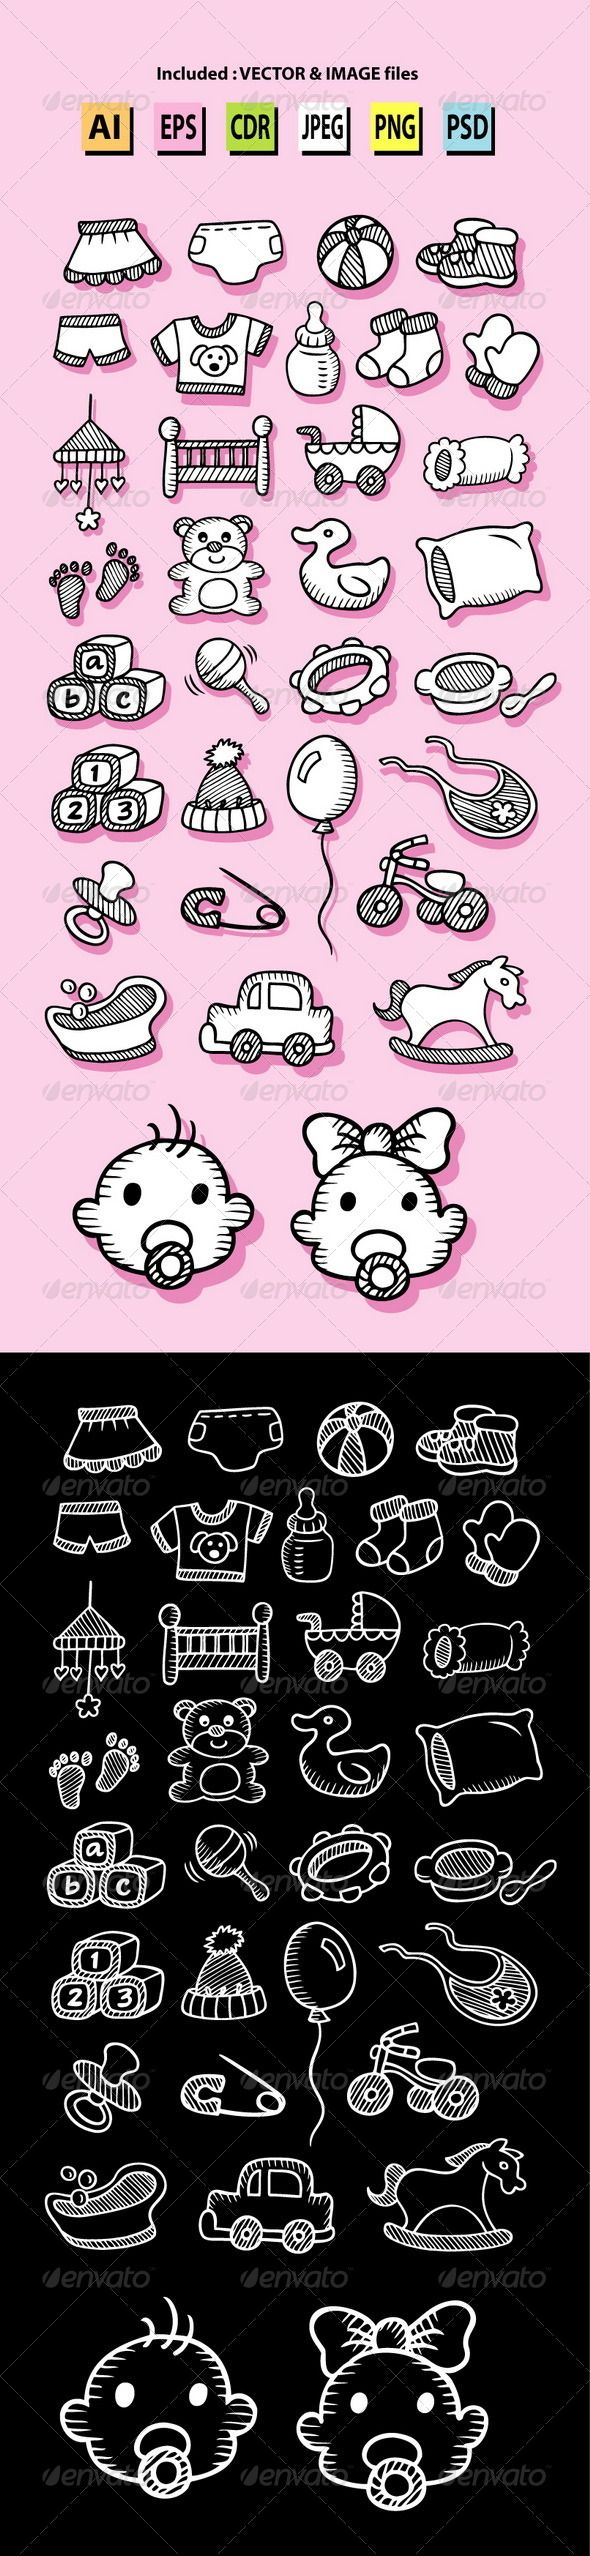 Set of Baby Icon Sketches #GraphicRiver 33 baby and kid icons hand drawing. Good use for your web icons, symbol, logo, baby shop design, or any design you want. Easy to use, edit or change color. ZIP included : AI CS cmyk, EPS8 rgb, CDR coreldraw (Vector files = You can use any size you want without loss resolution), JPEG rgb high resolution, PNG transparent, and PSD photoshop file. Object icons :